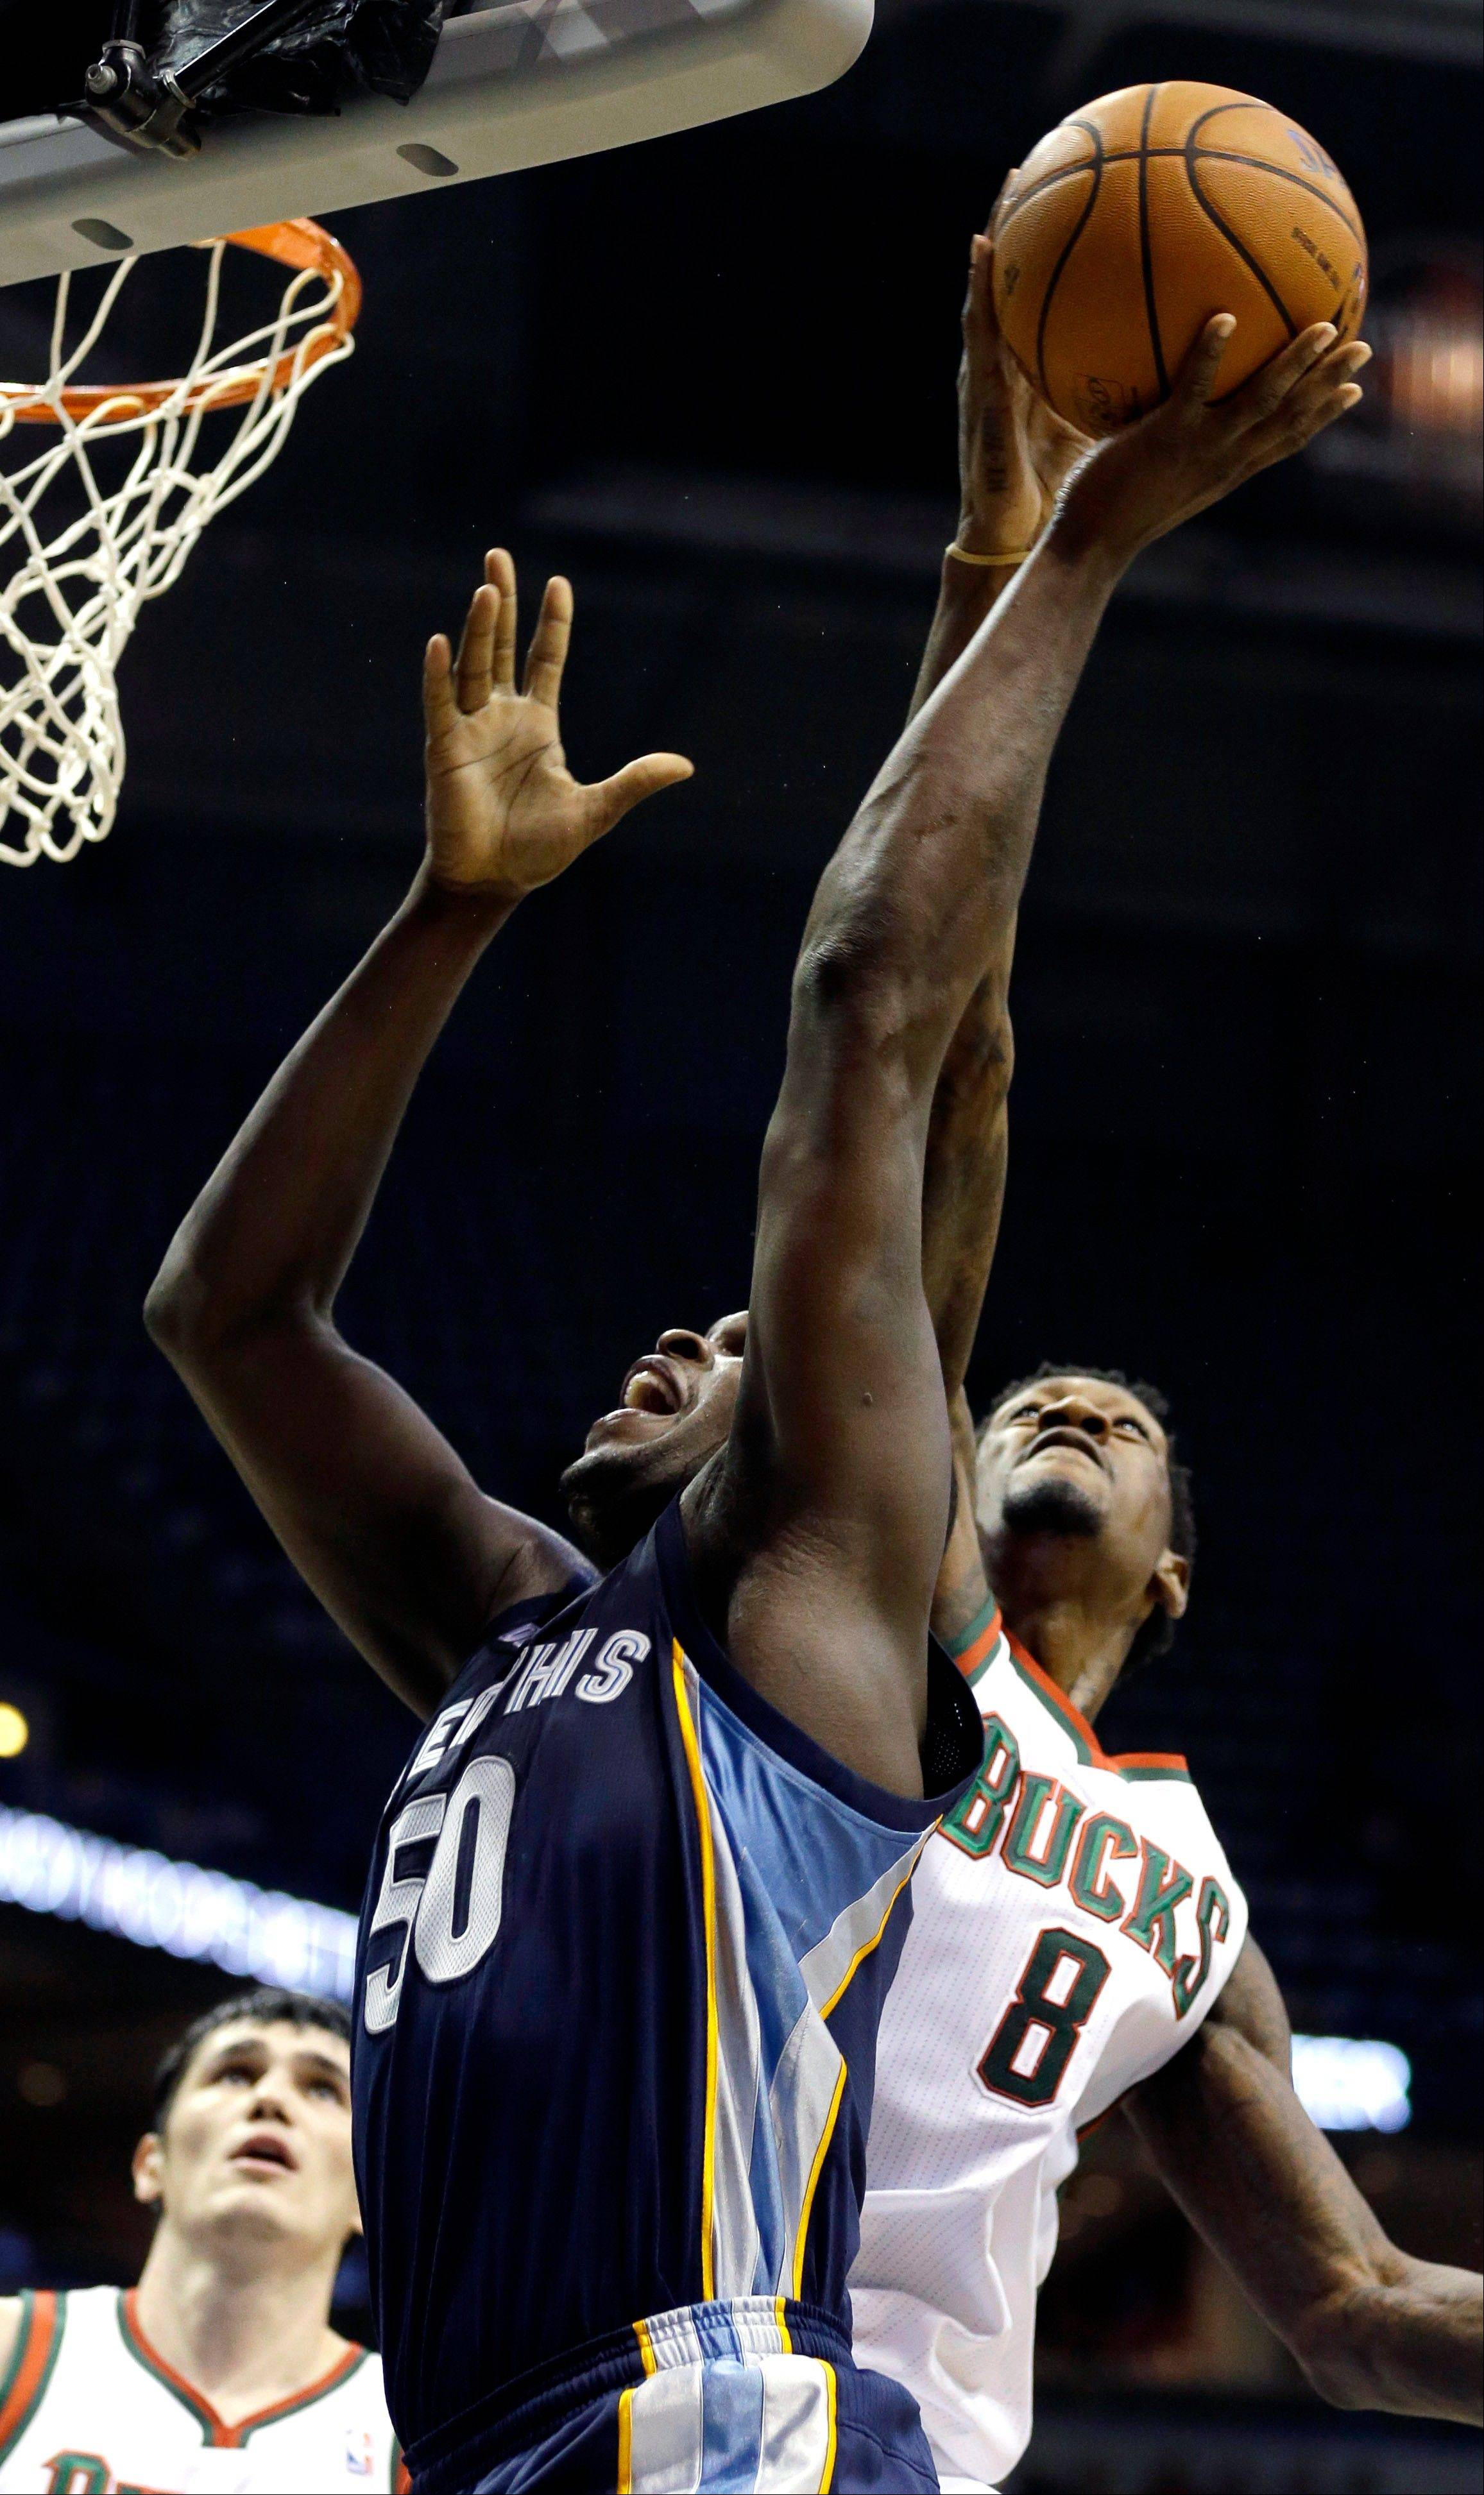 The Milwaukee Bucks Larry Sanders (8) blocks the shot of Memphis Grizzlies' Zach Randolph Wednesday during the first half in Milwaukee.